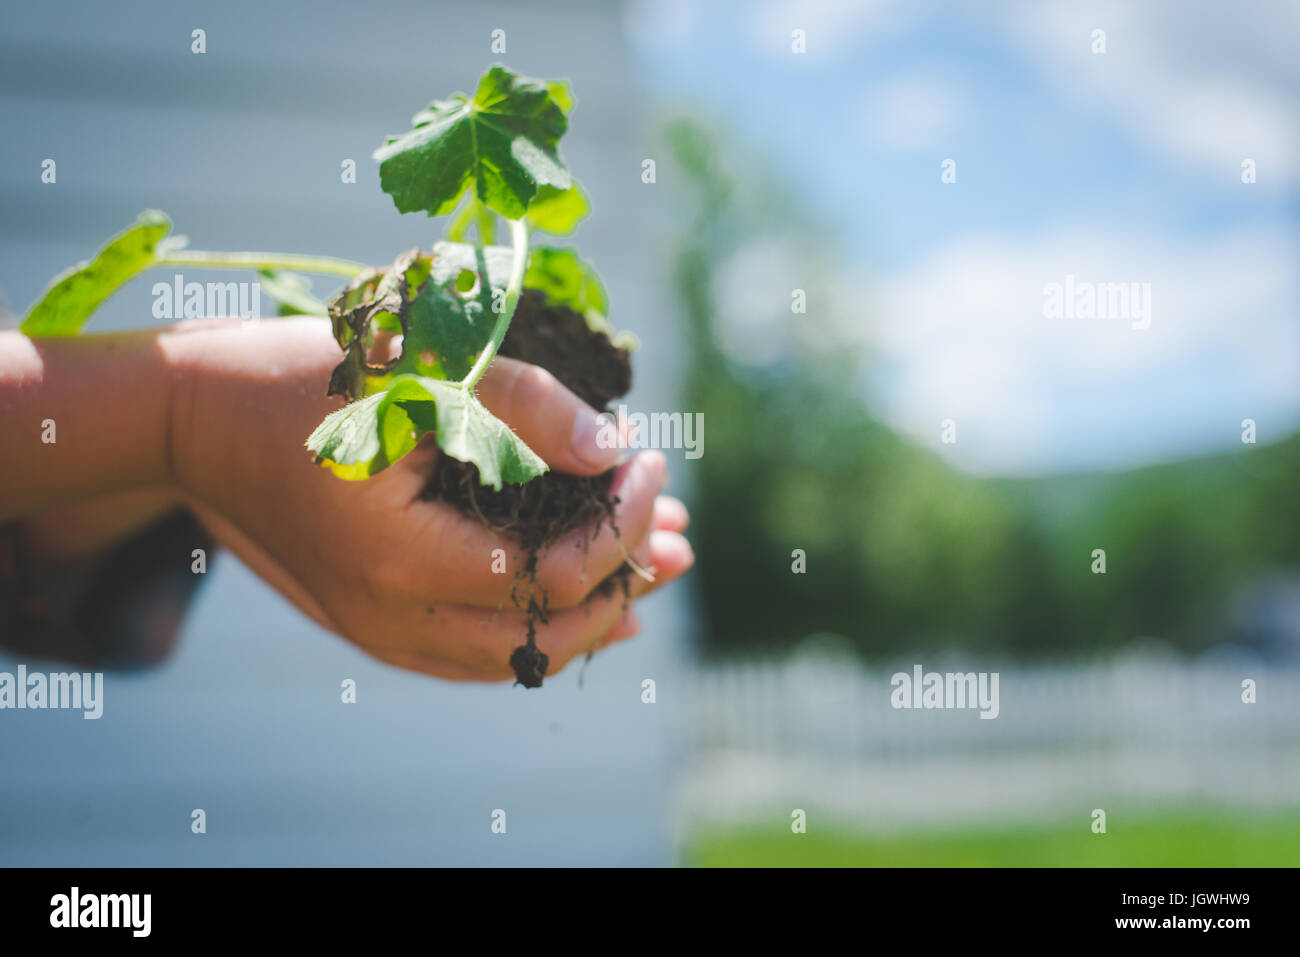 A child's hands hold a plant with soil under it. - Stock Image